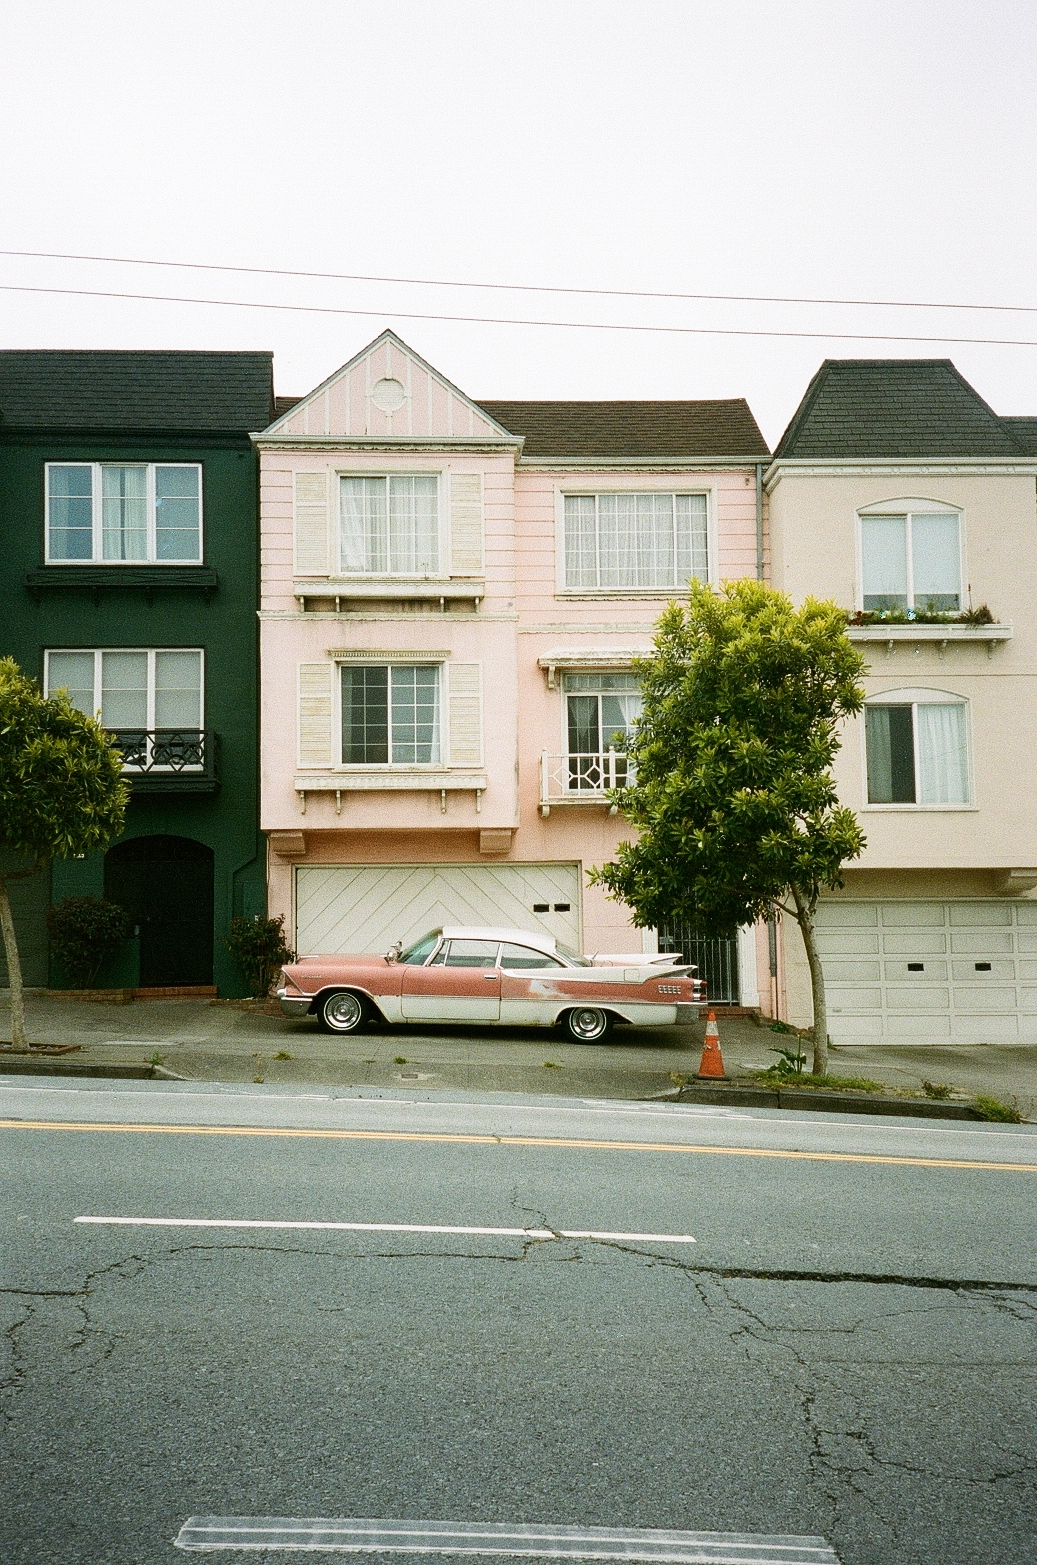 San Francisco apartments with classic pink car sitting in front